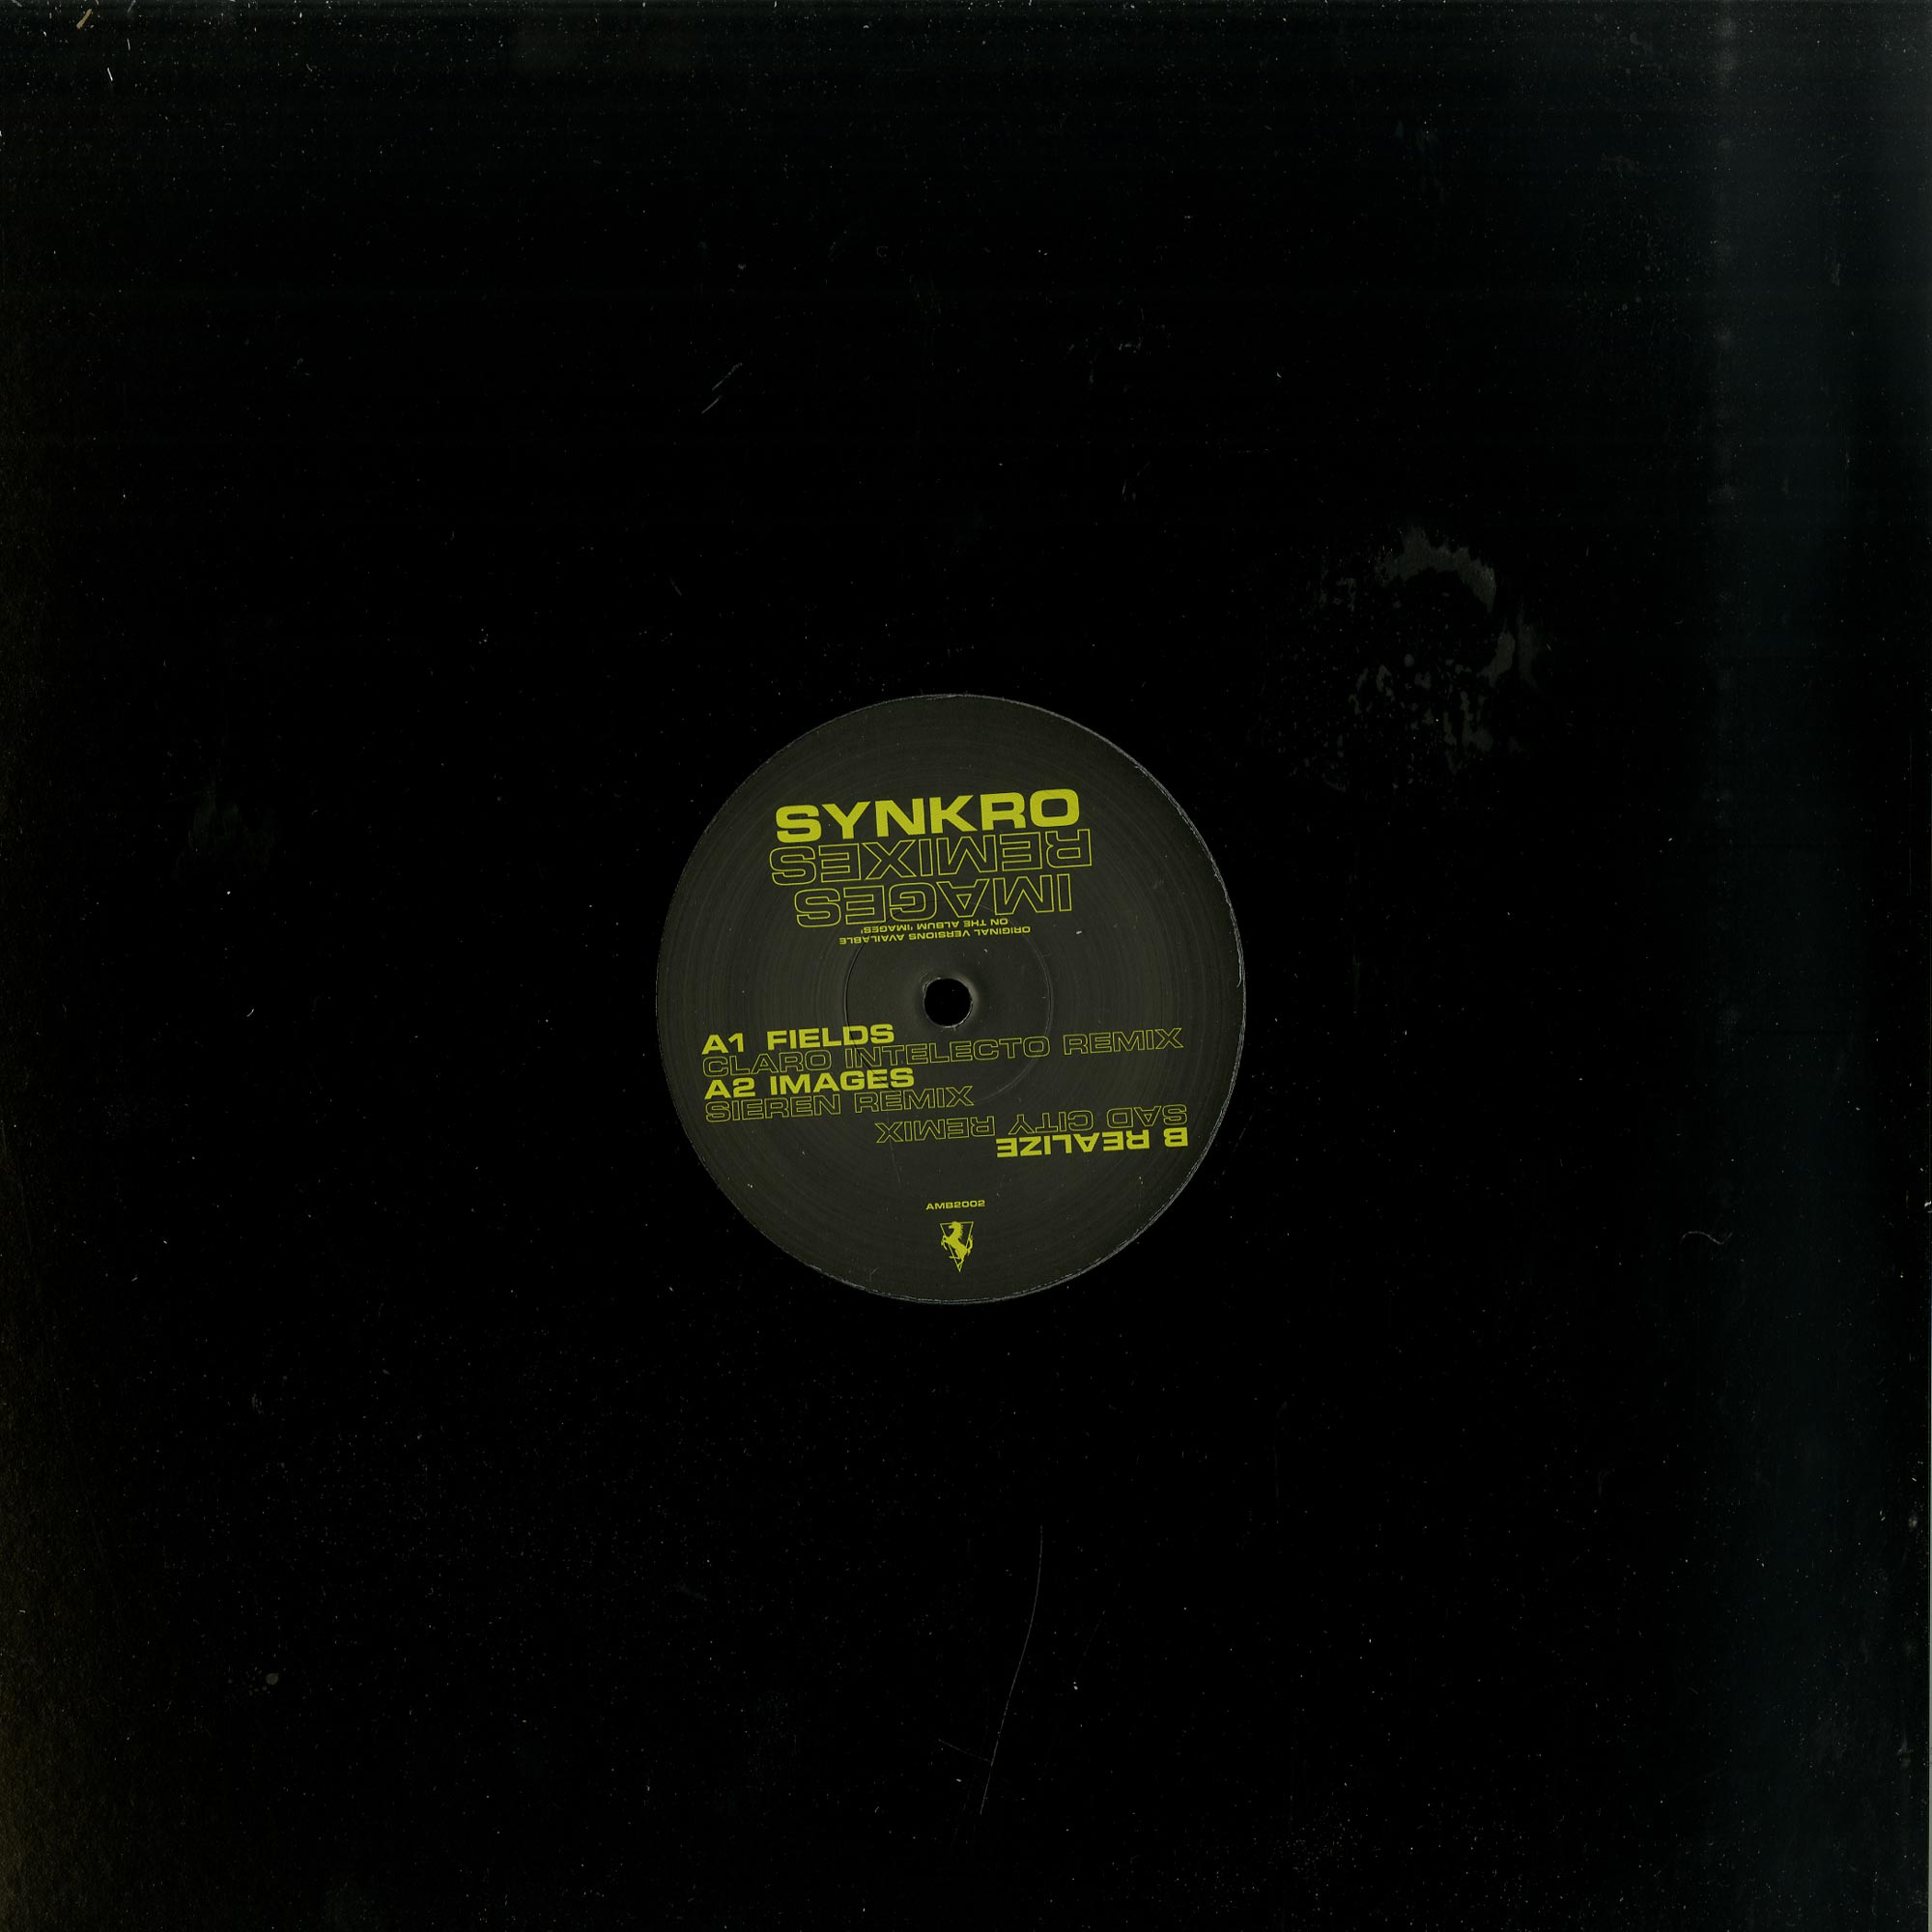 Synkro - IMAGES REMIXED